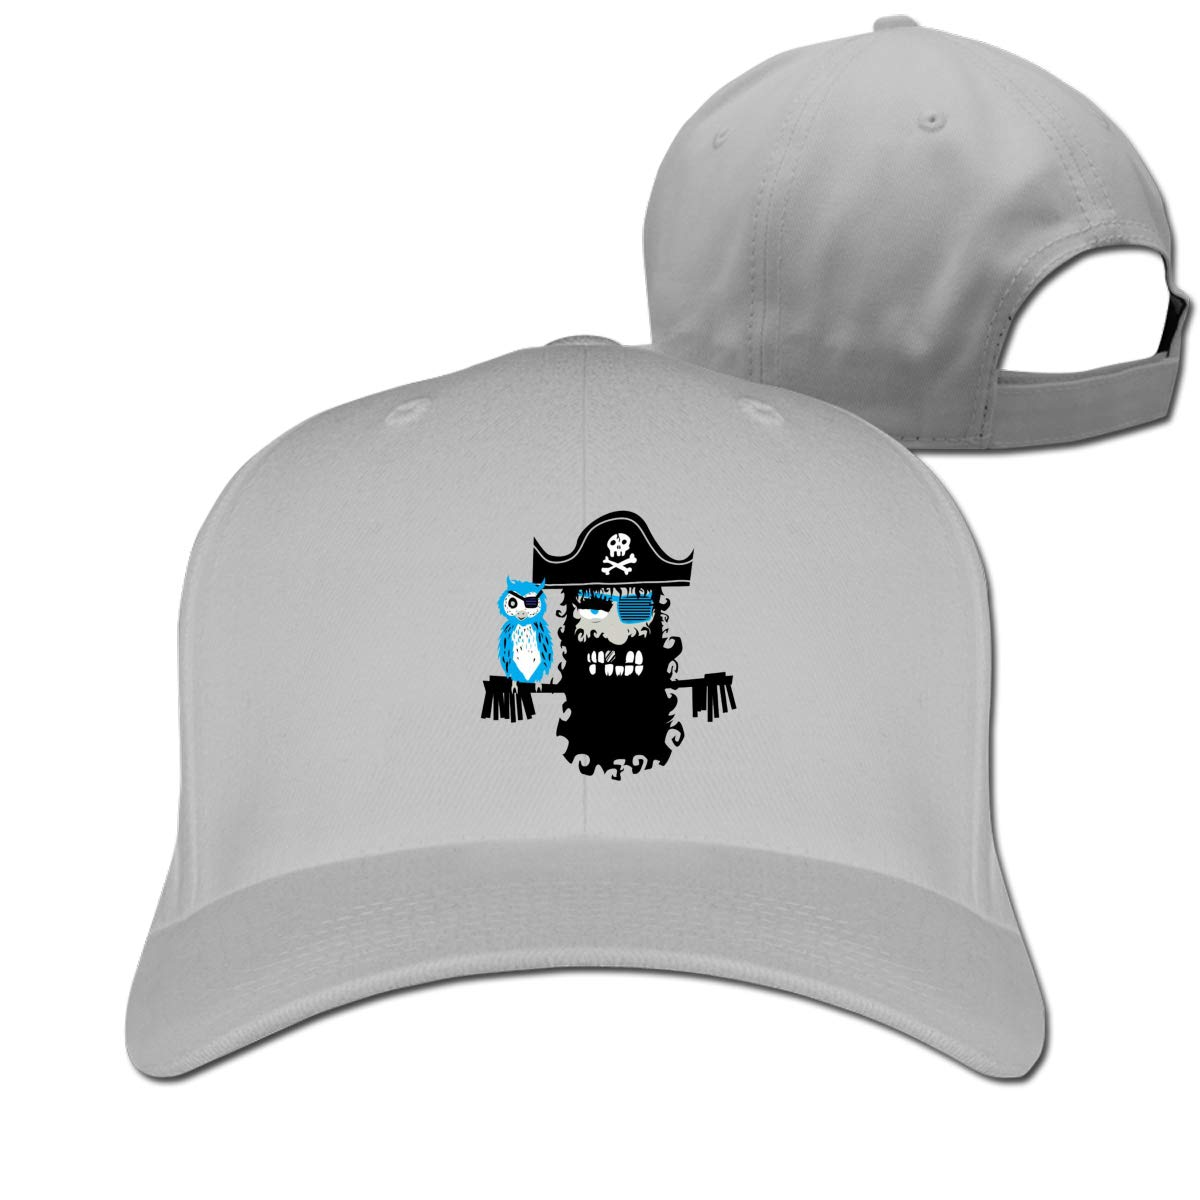 Fashion Pirates Fashion Adjustable Cotton Baseball Caps Trucker Driver Hat Outdoor Cap Gray